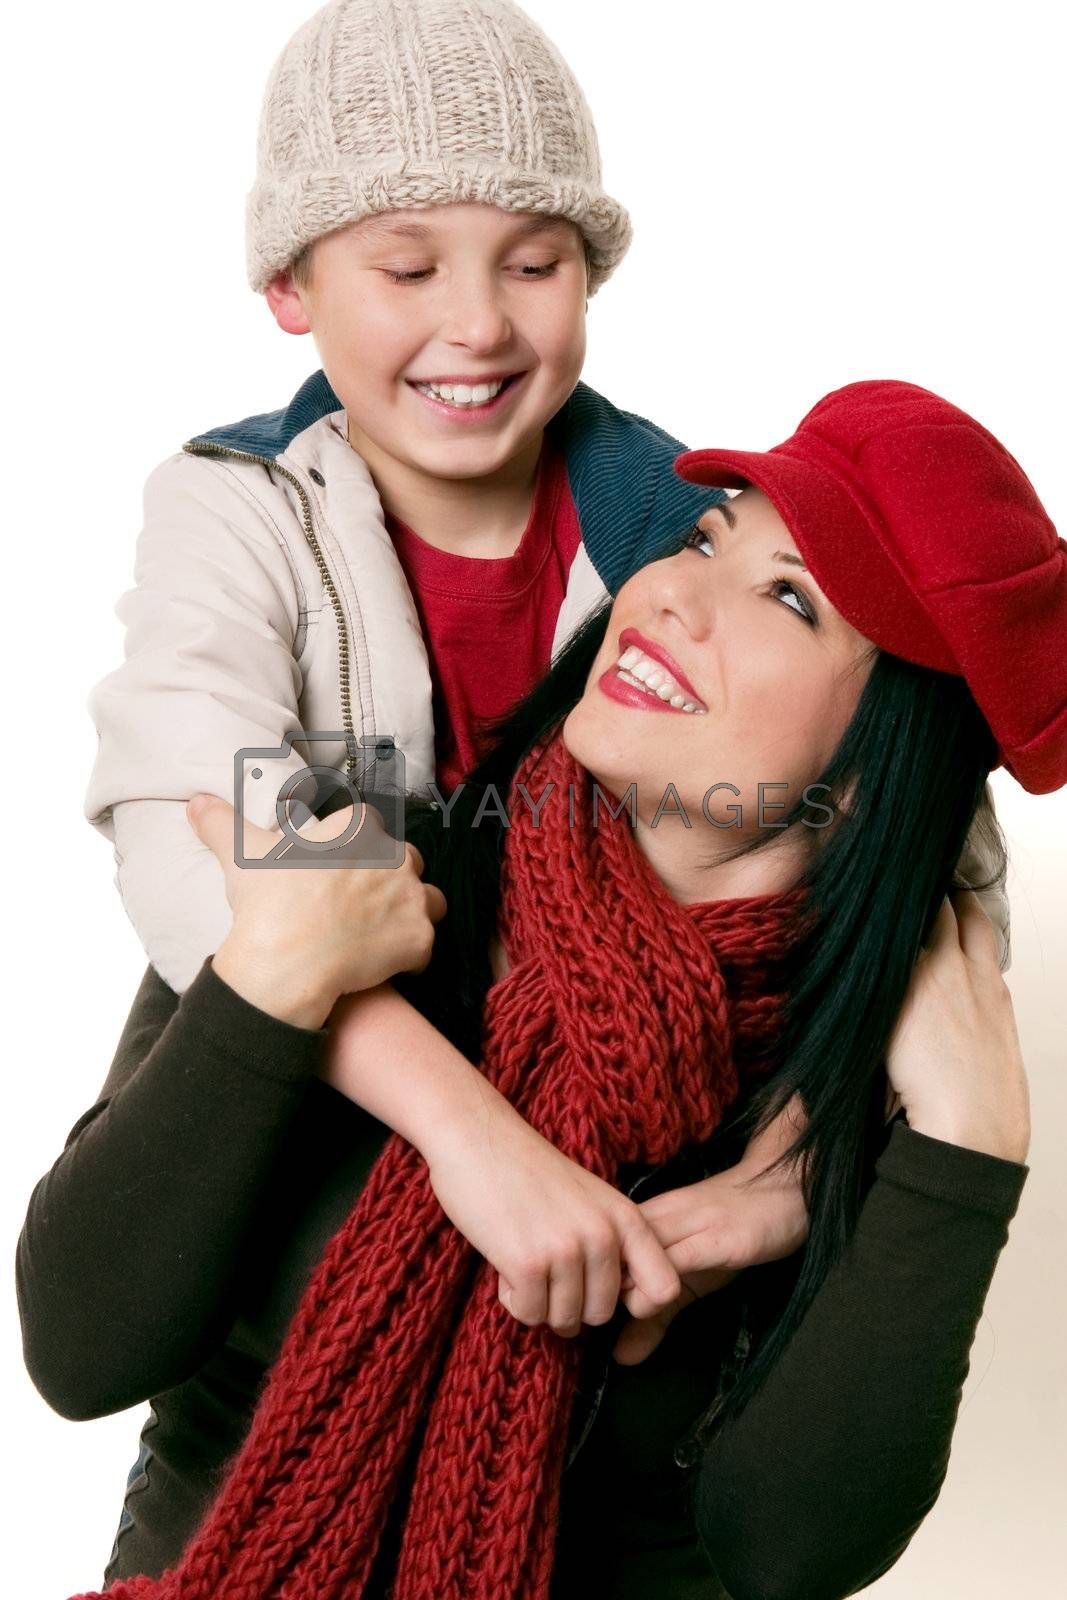 Happily smiling mother and son enjoying time together